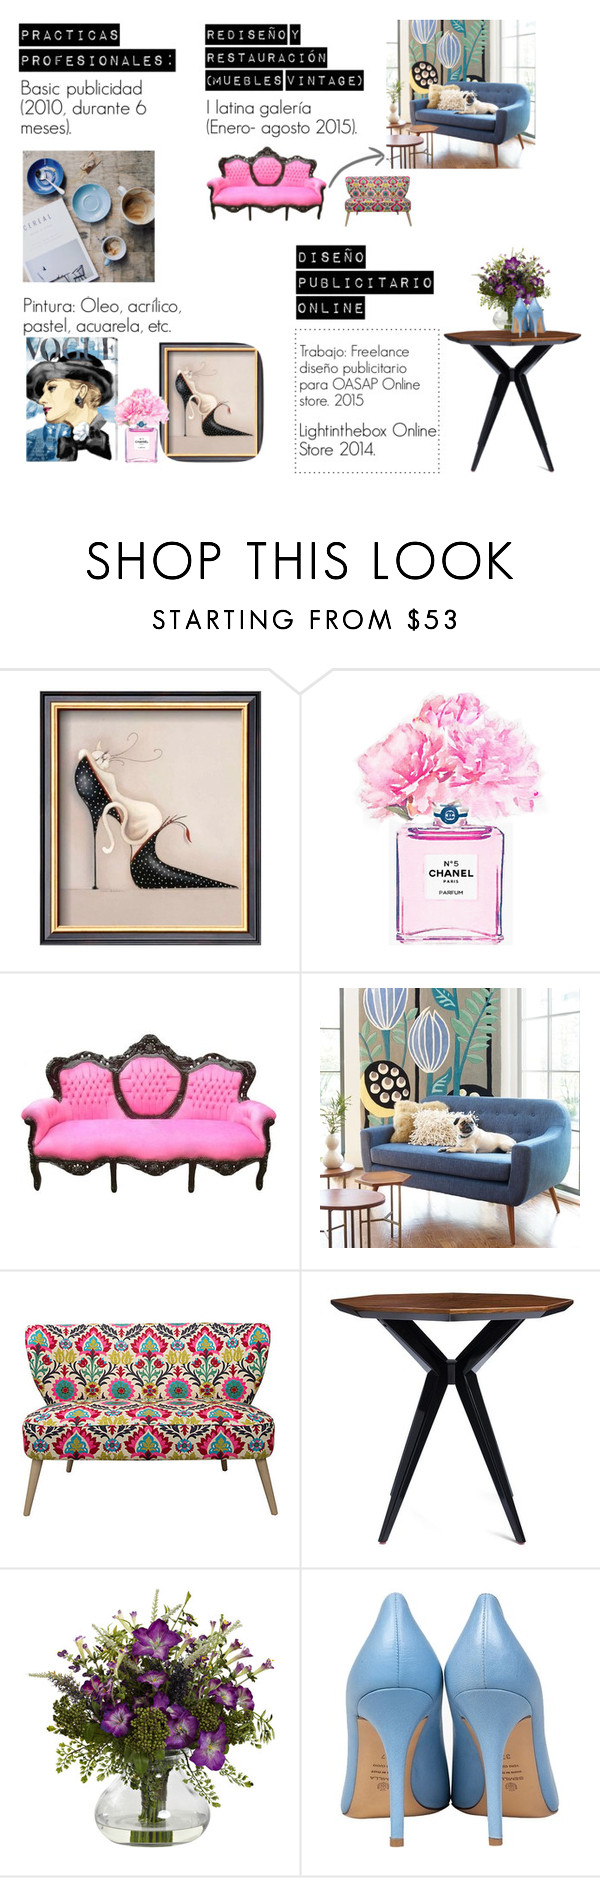 """Sin título #466"" by cano315 on Polyvore featuring moda, Chanel, Kate Spade y Semilla"